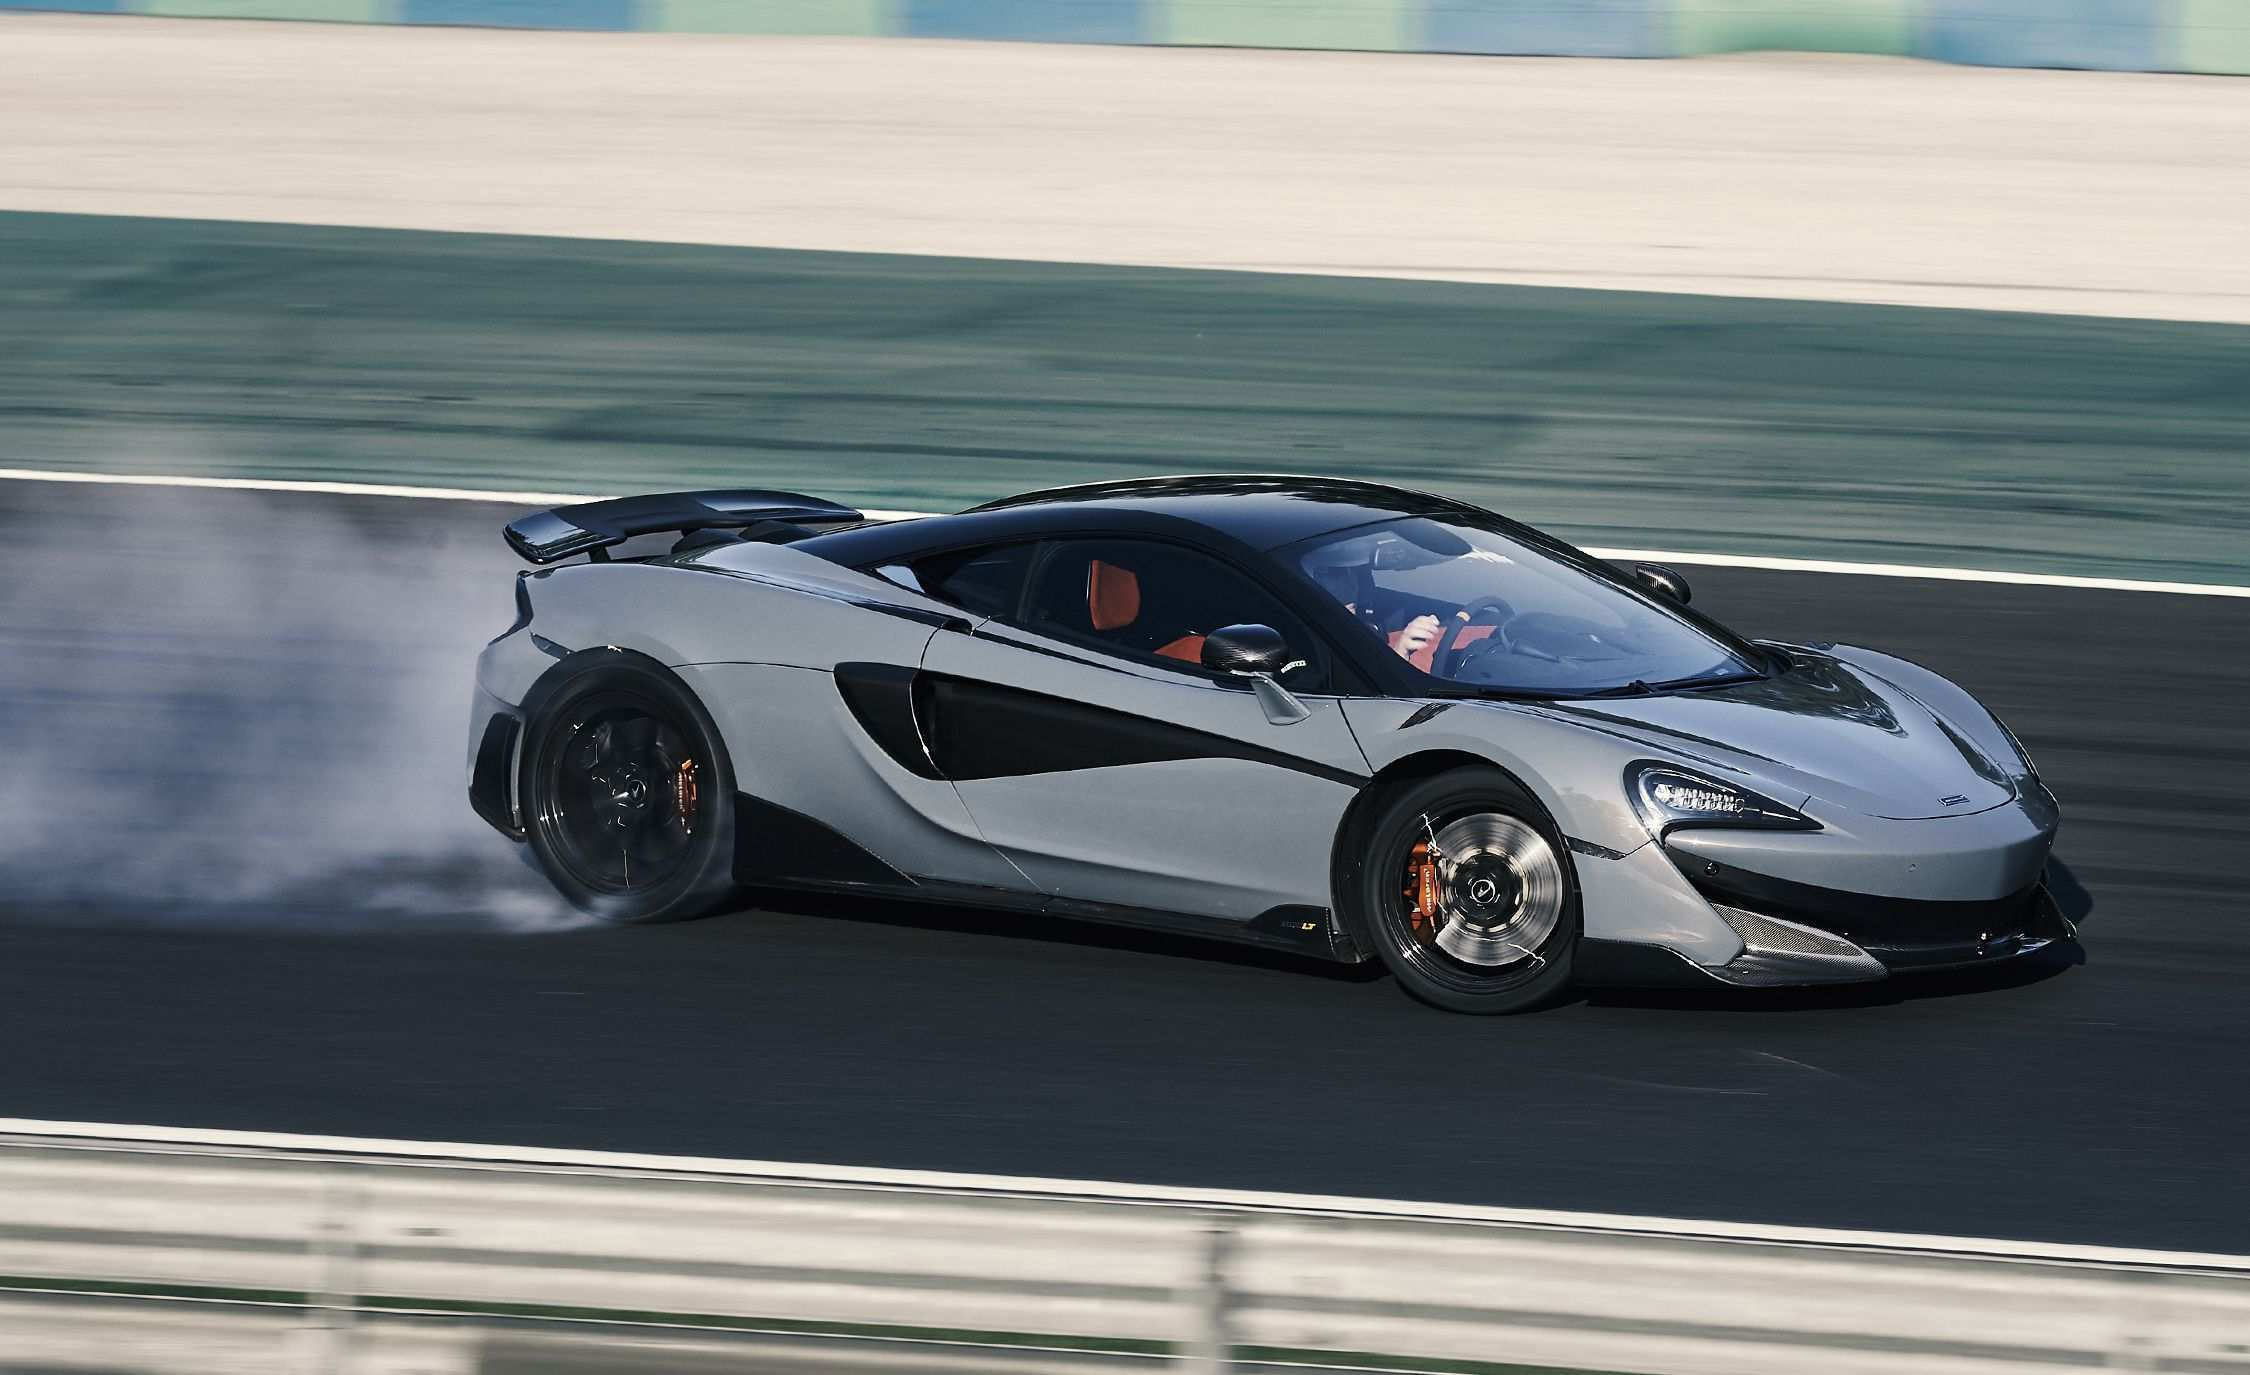 12 Concept of 2019 Mclaren Top Speed Picture with 2019 Mclaren Top Speed